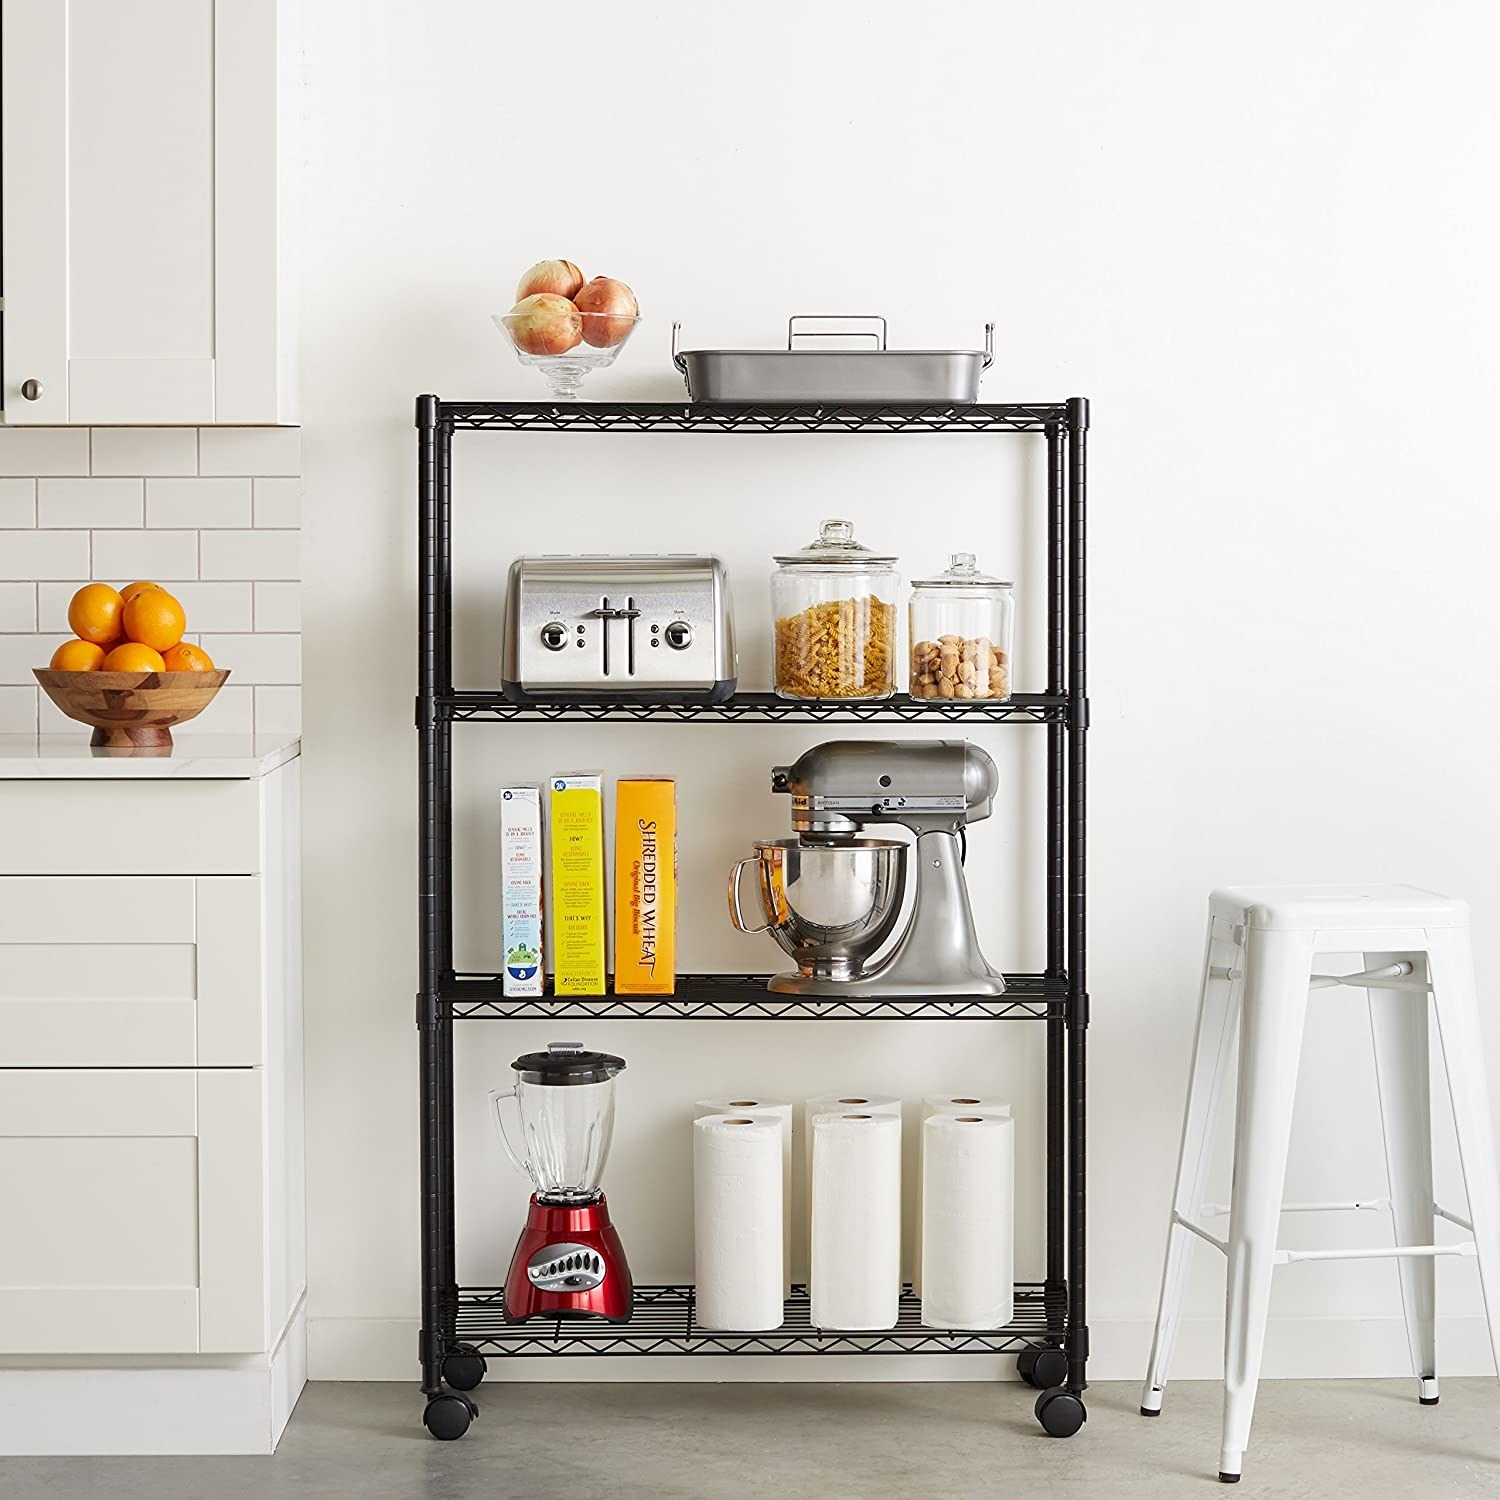 A four-tiered metal storage rack beside a counter with kitchen supplies on each shelf